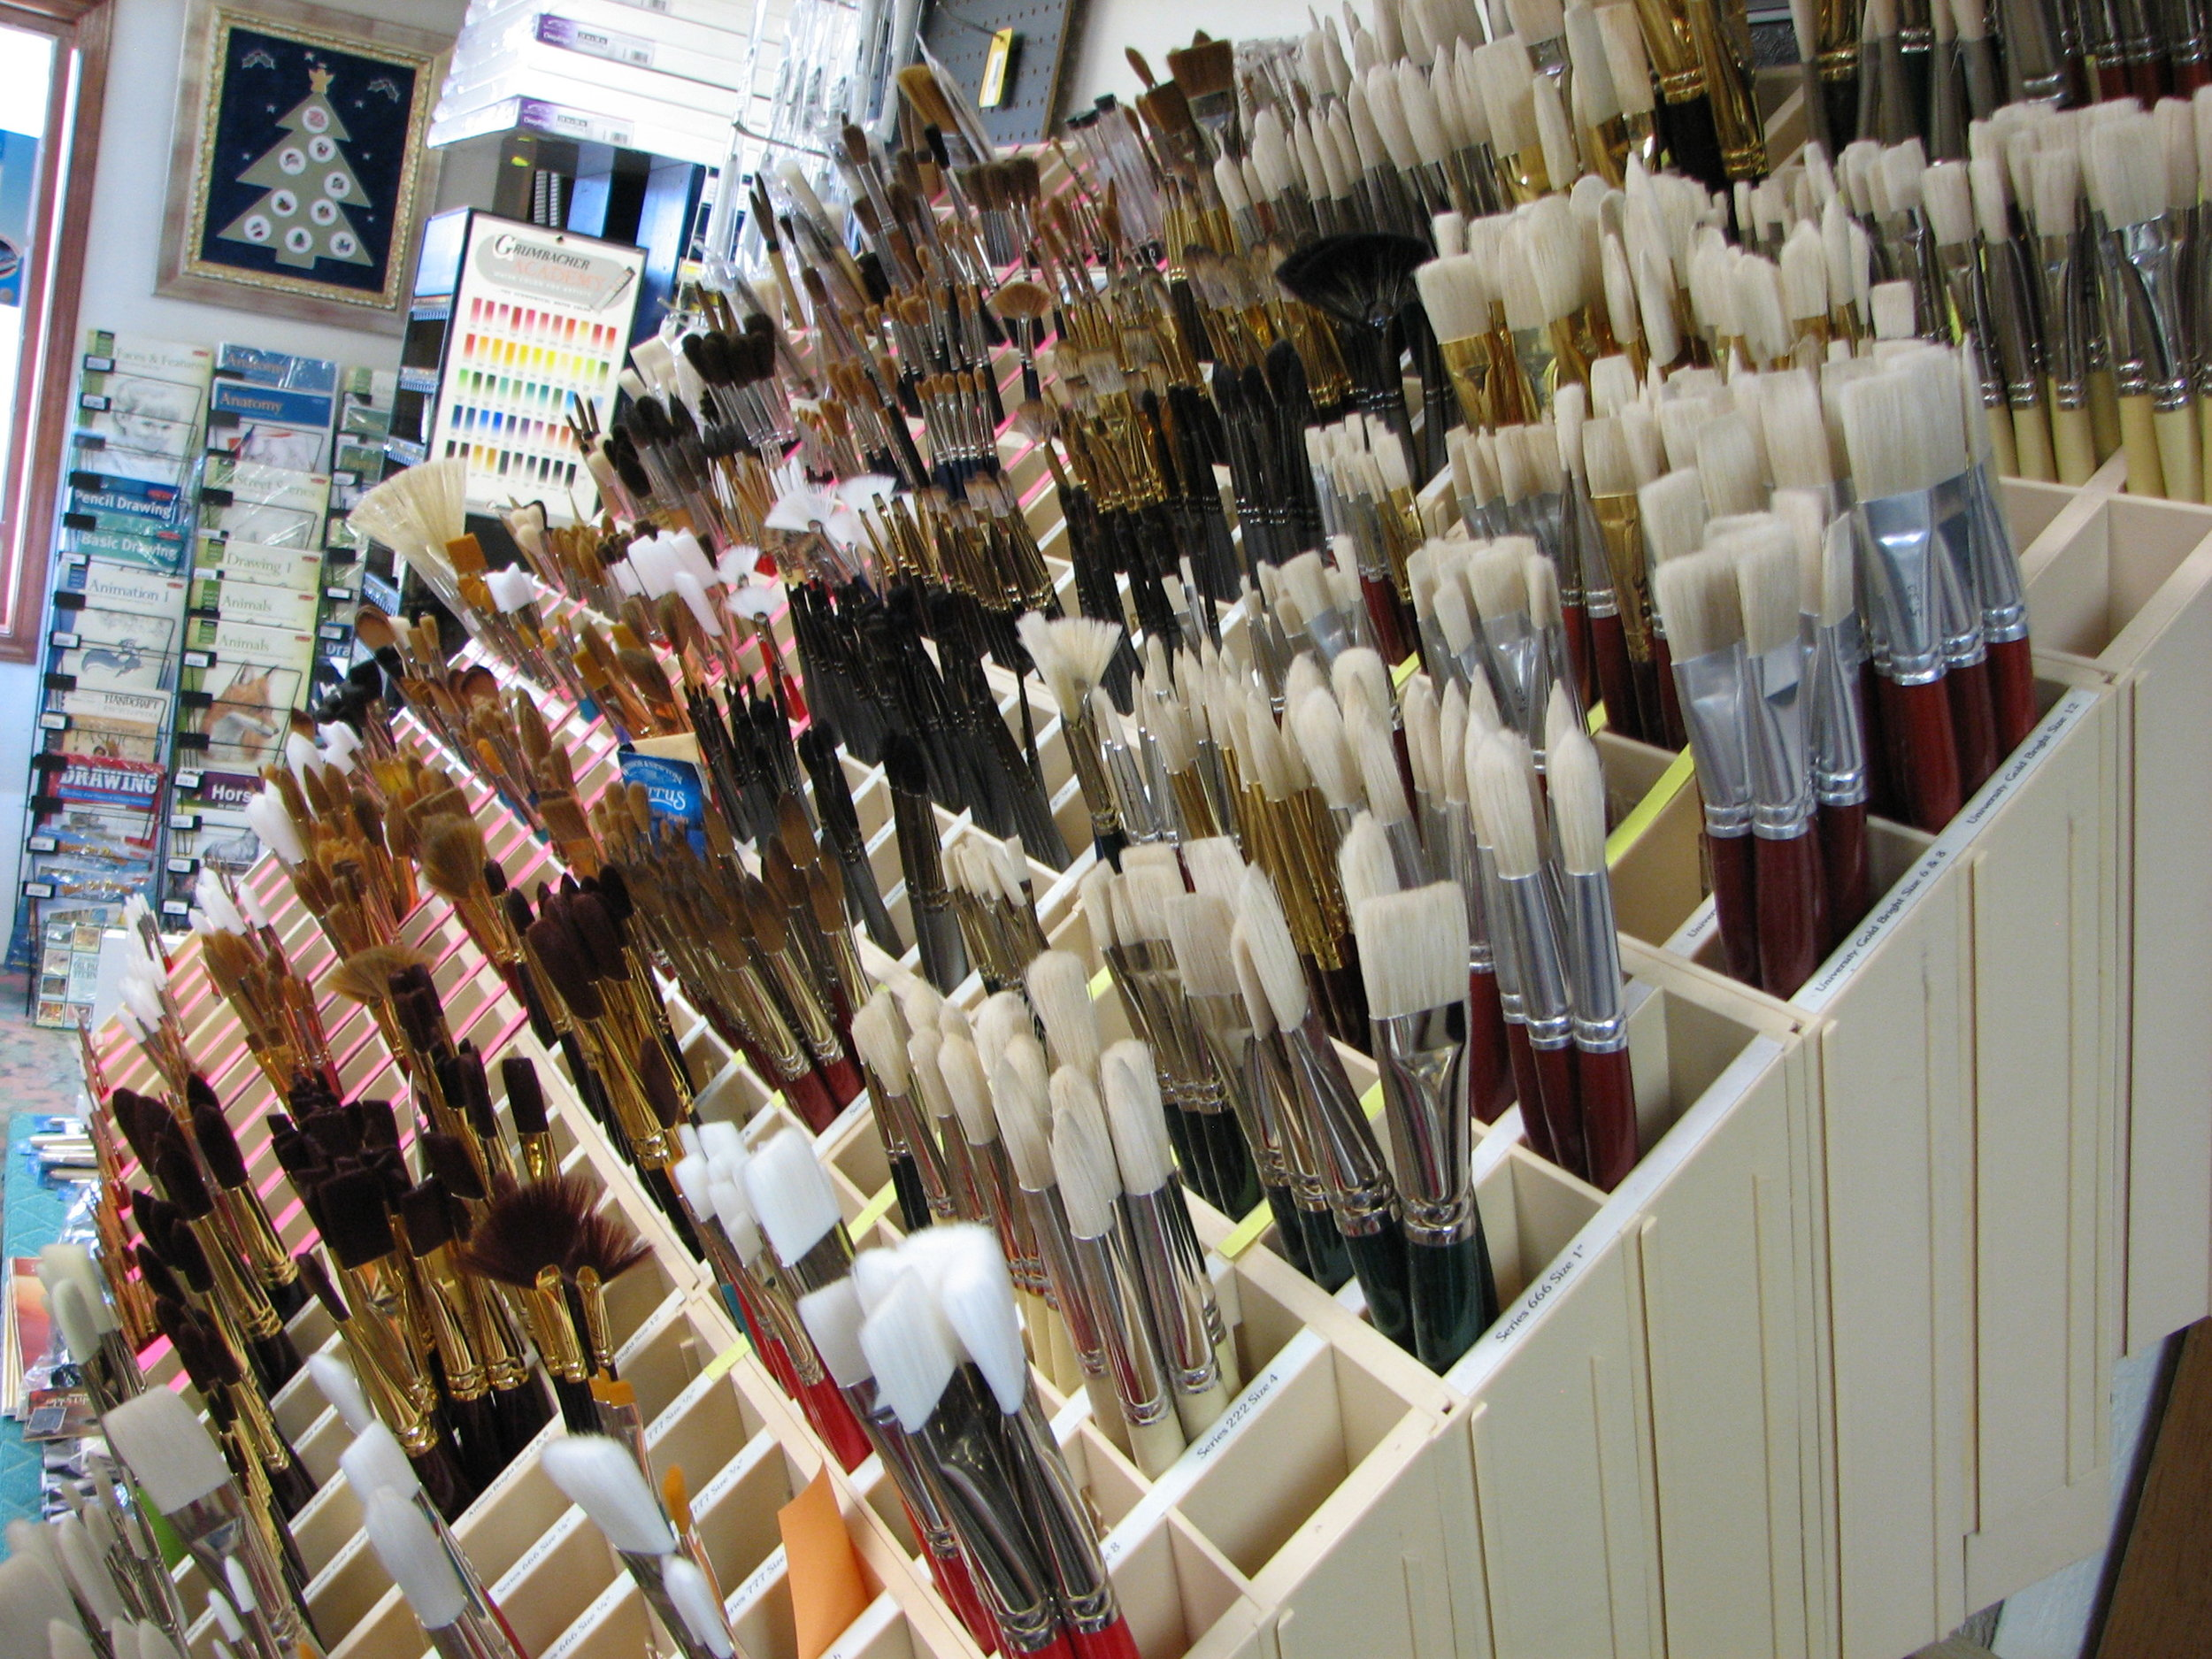 Brushes for every medium and every price